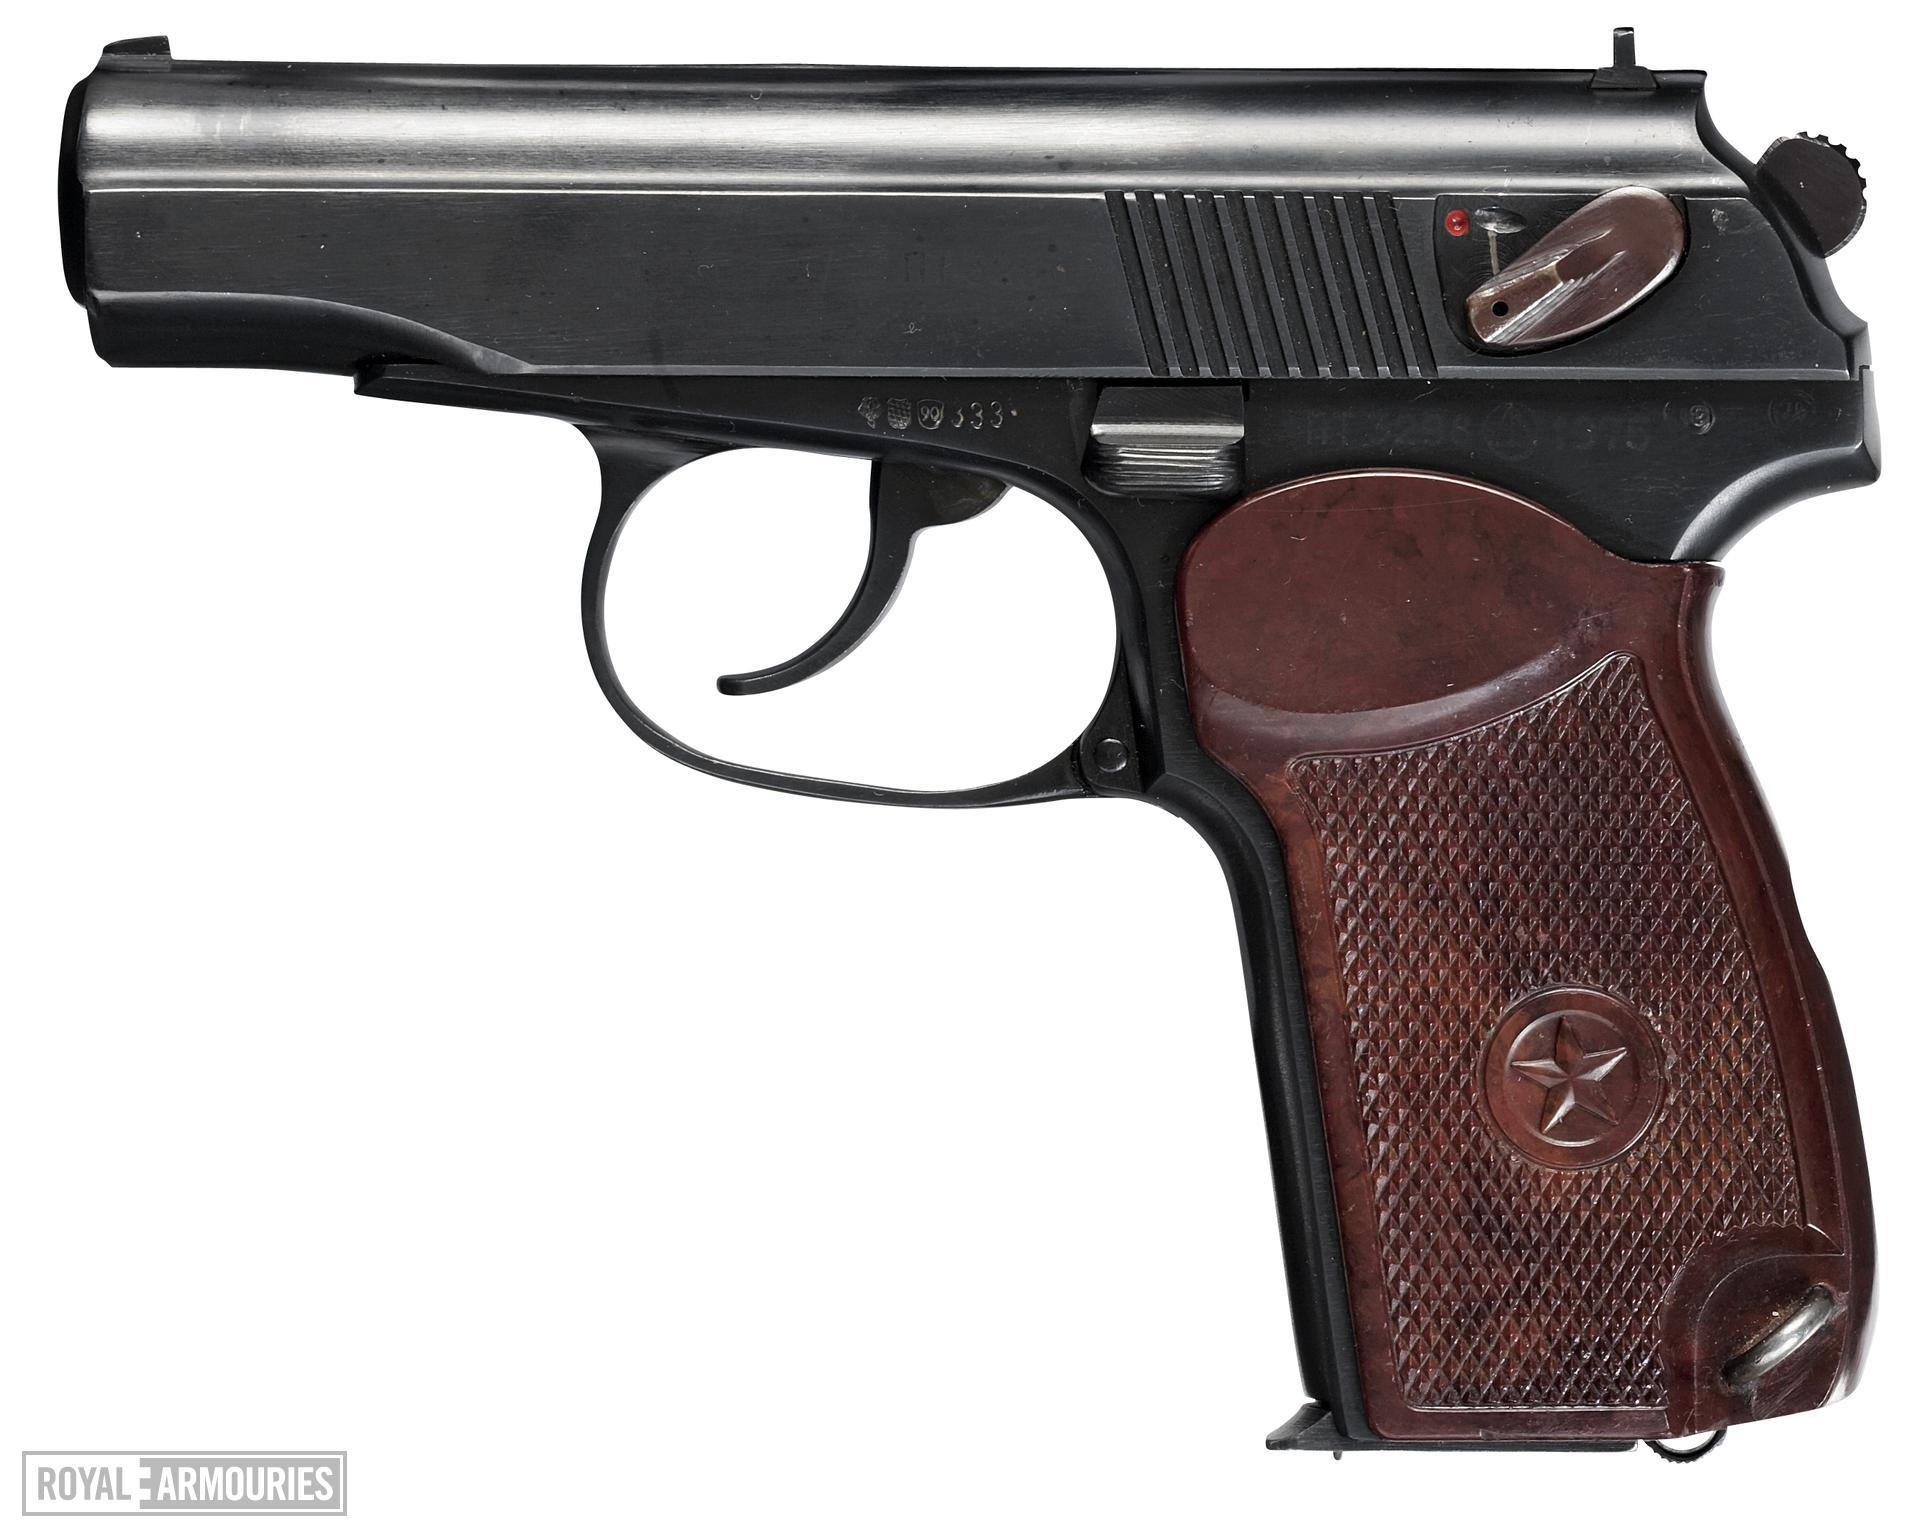 Centrefire self-loading pistol - Makarov PM Centrefire self-loading pistol, Makarov PM, Russia, dated 1975